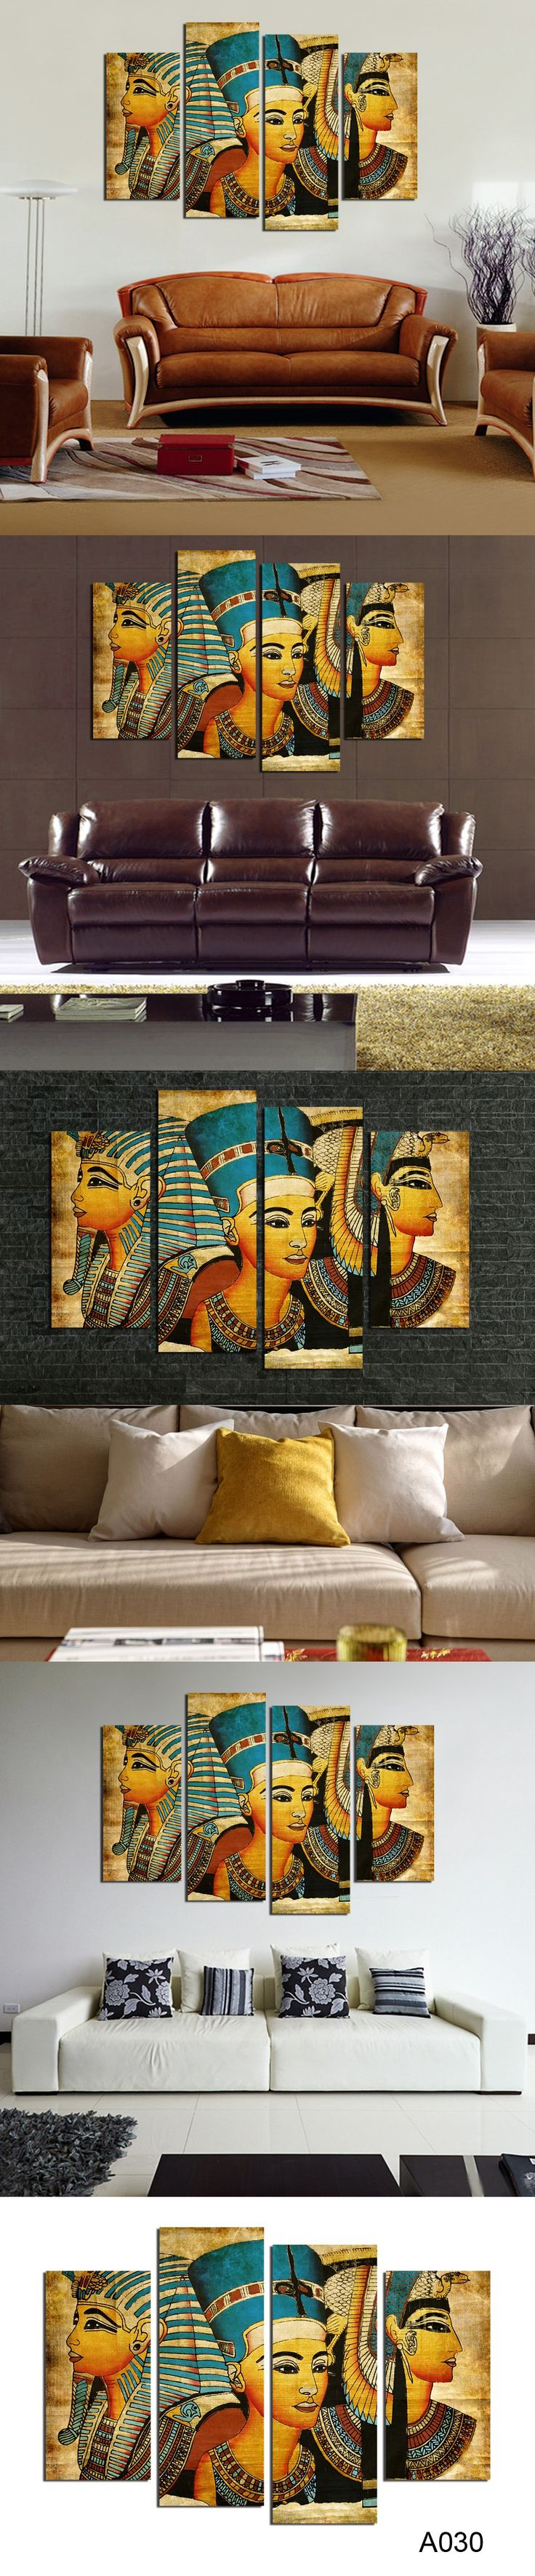 Large wall art canvas Pharaoh Of Egyptian Home Decoration Paintings Modern Abstract Wall Painting wall picture for living room $36.8